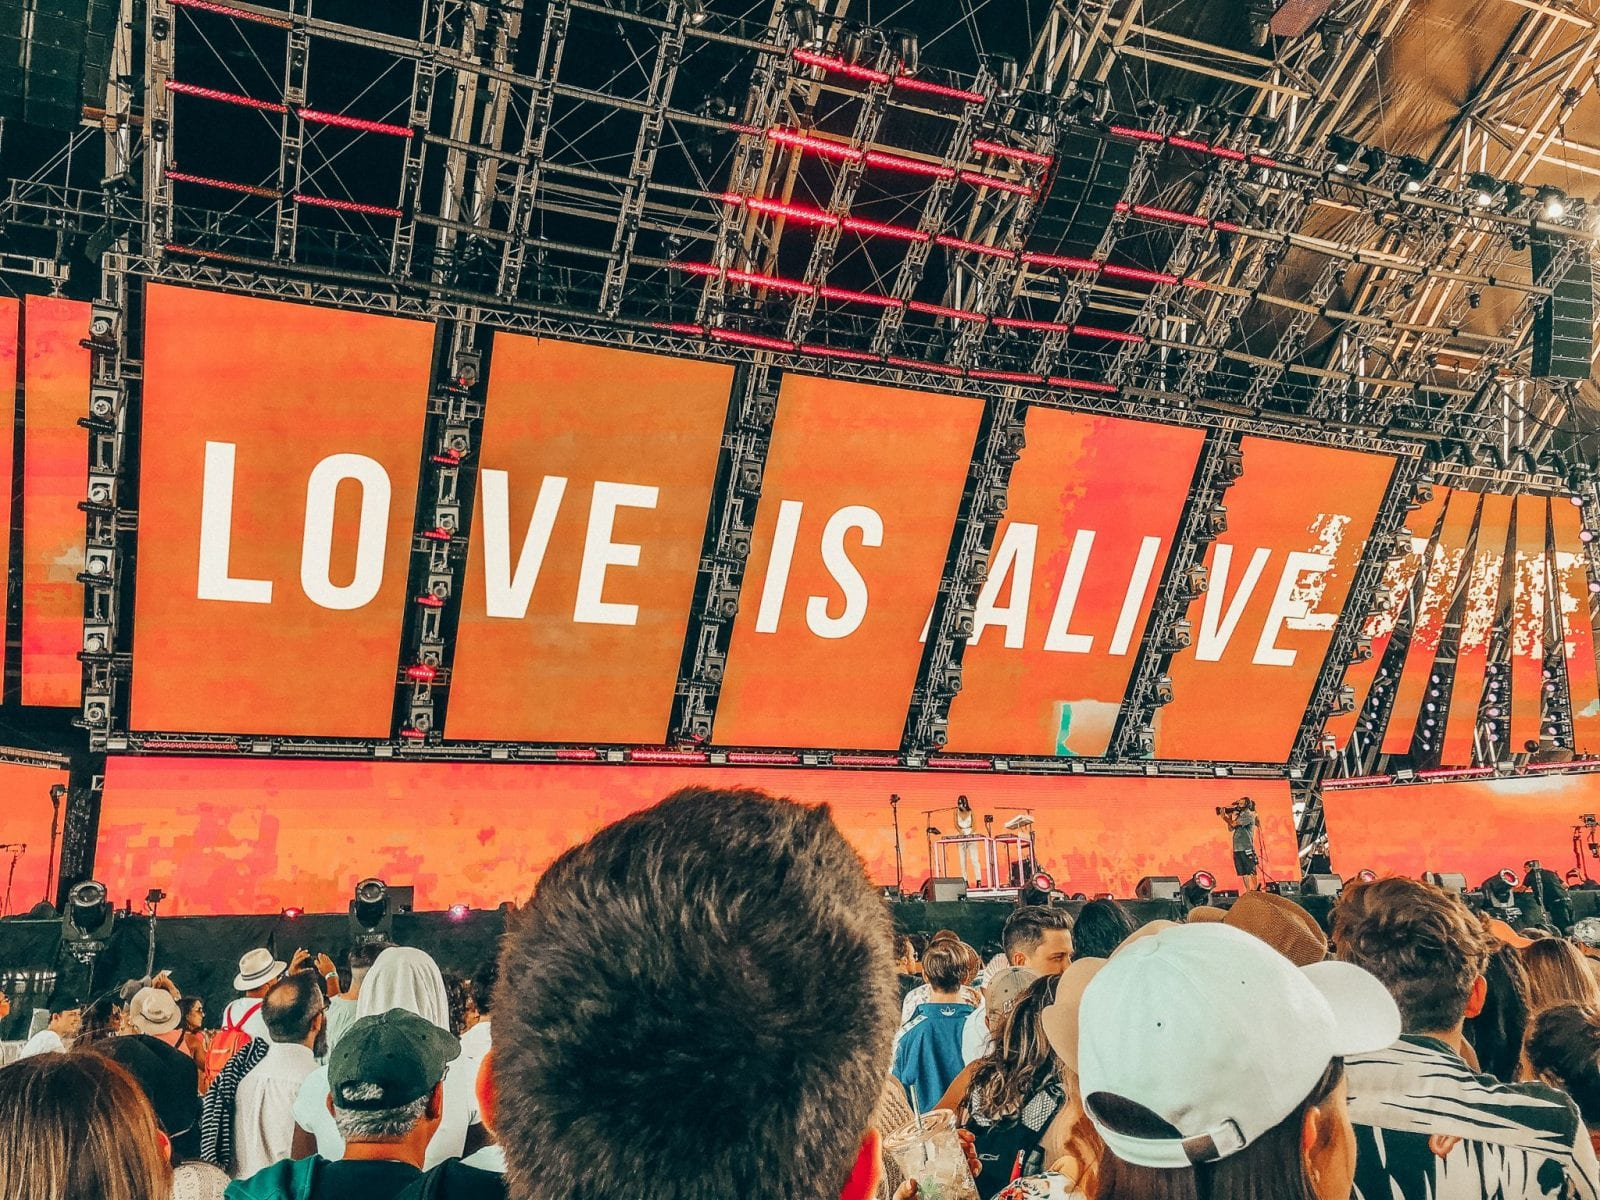 This is a photo of the decor at Coachella 2018.